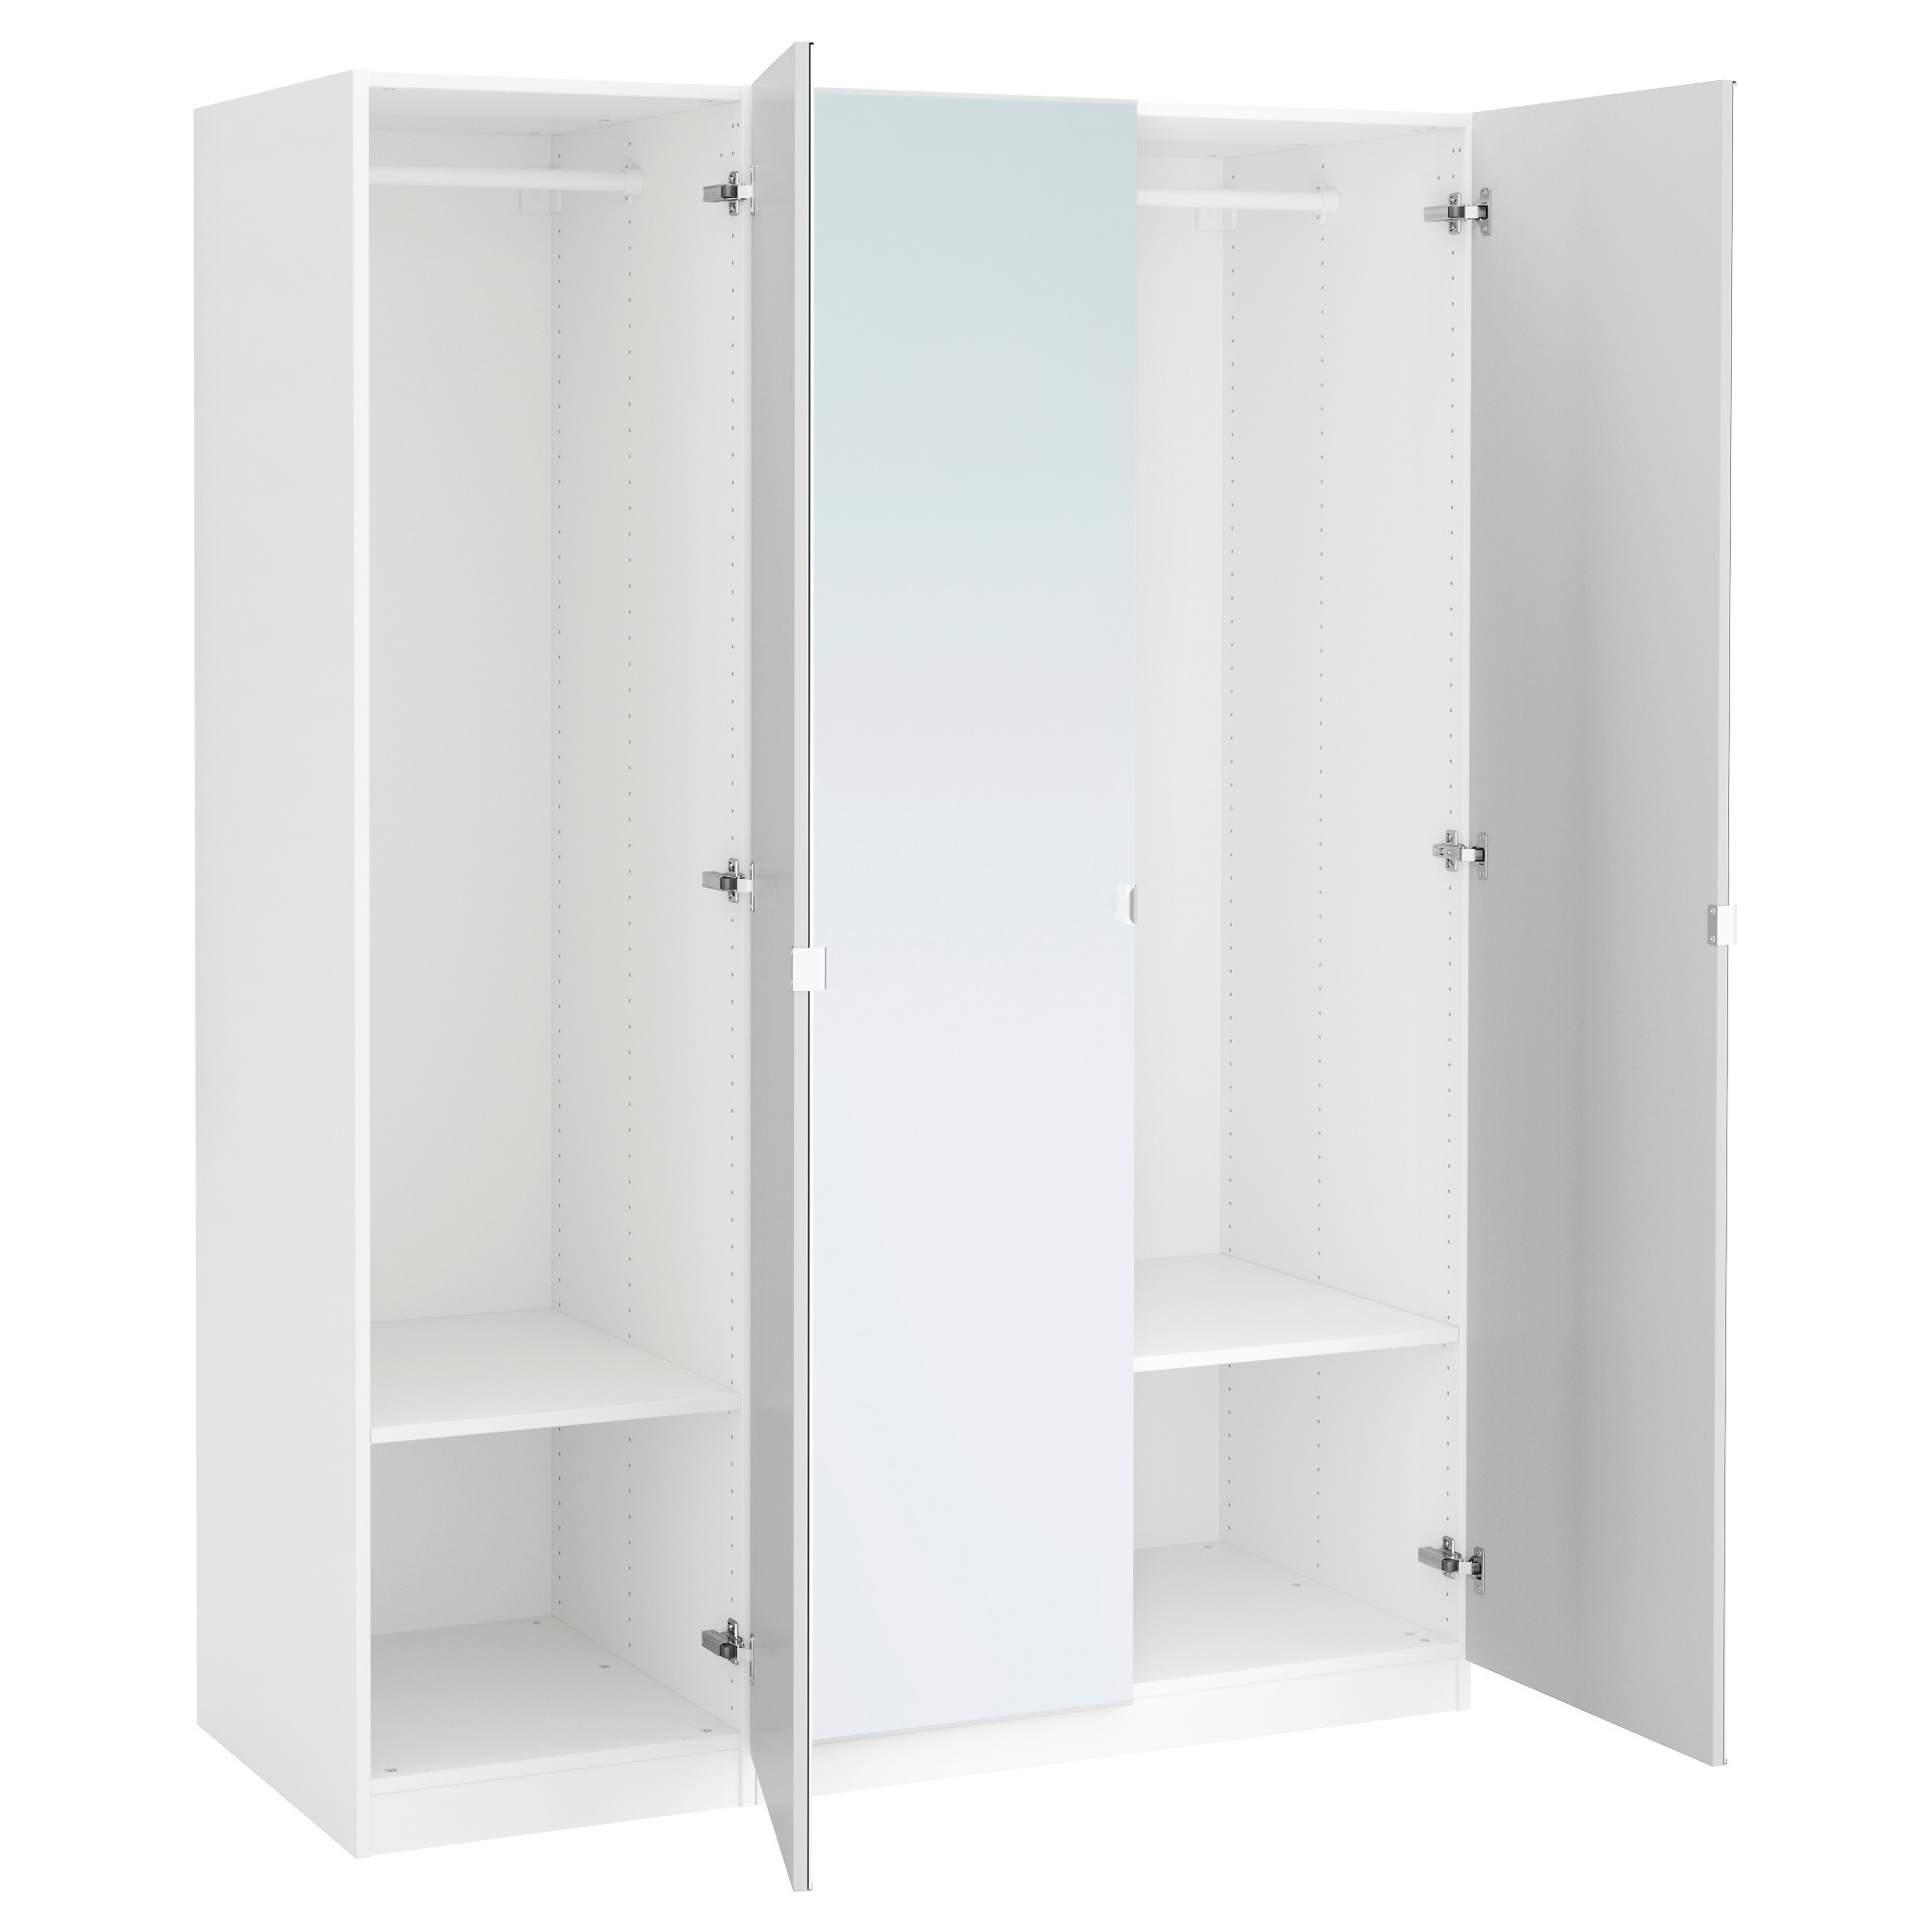 Cheap White Wardrobes Intended For Well Liked Pax Wardrobe White/vikedal Mirror Glass 150x60x201 Cm – Ikea (View 8 of 15)